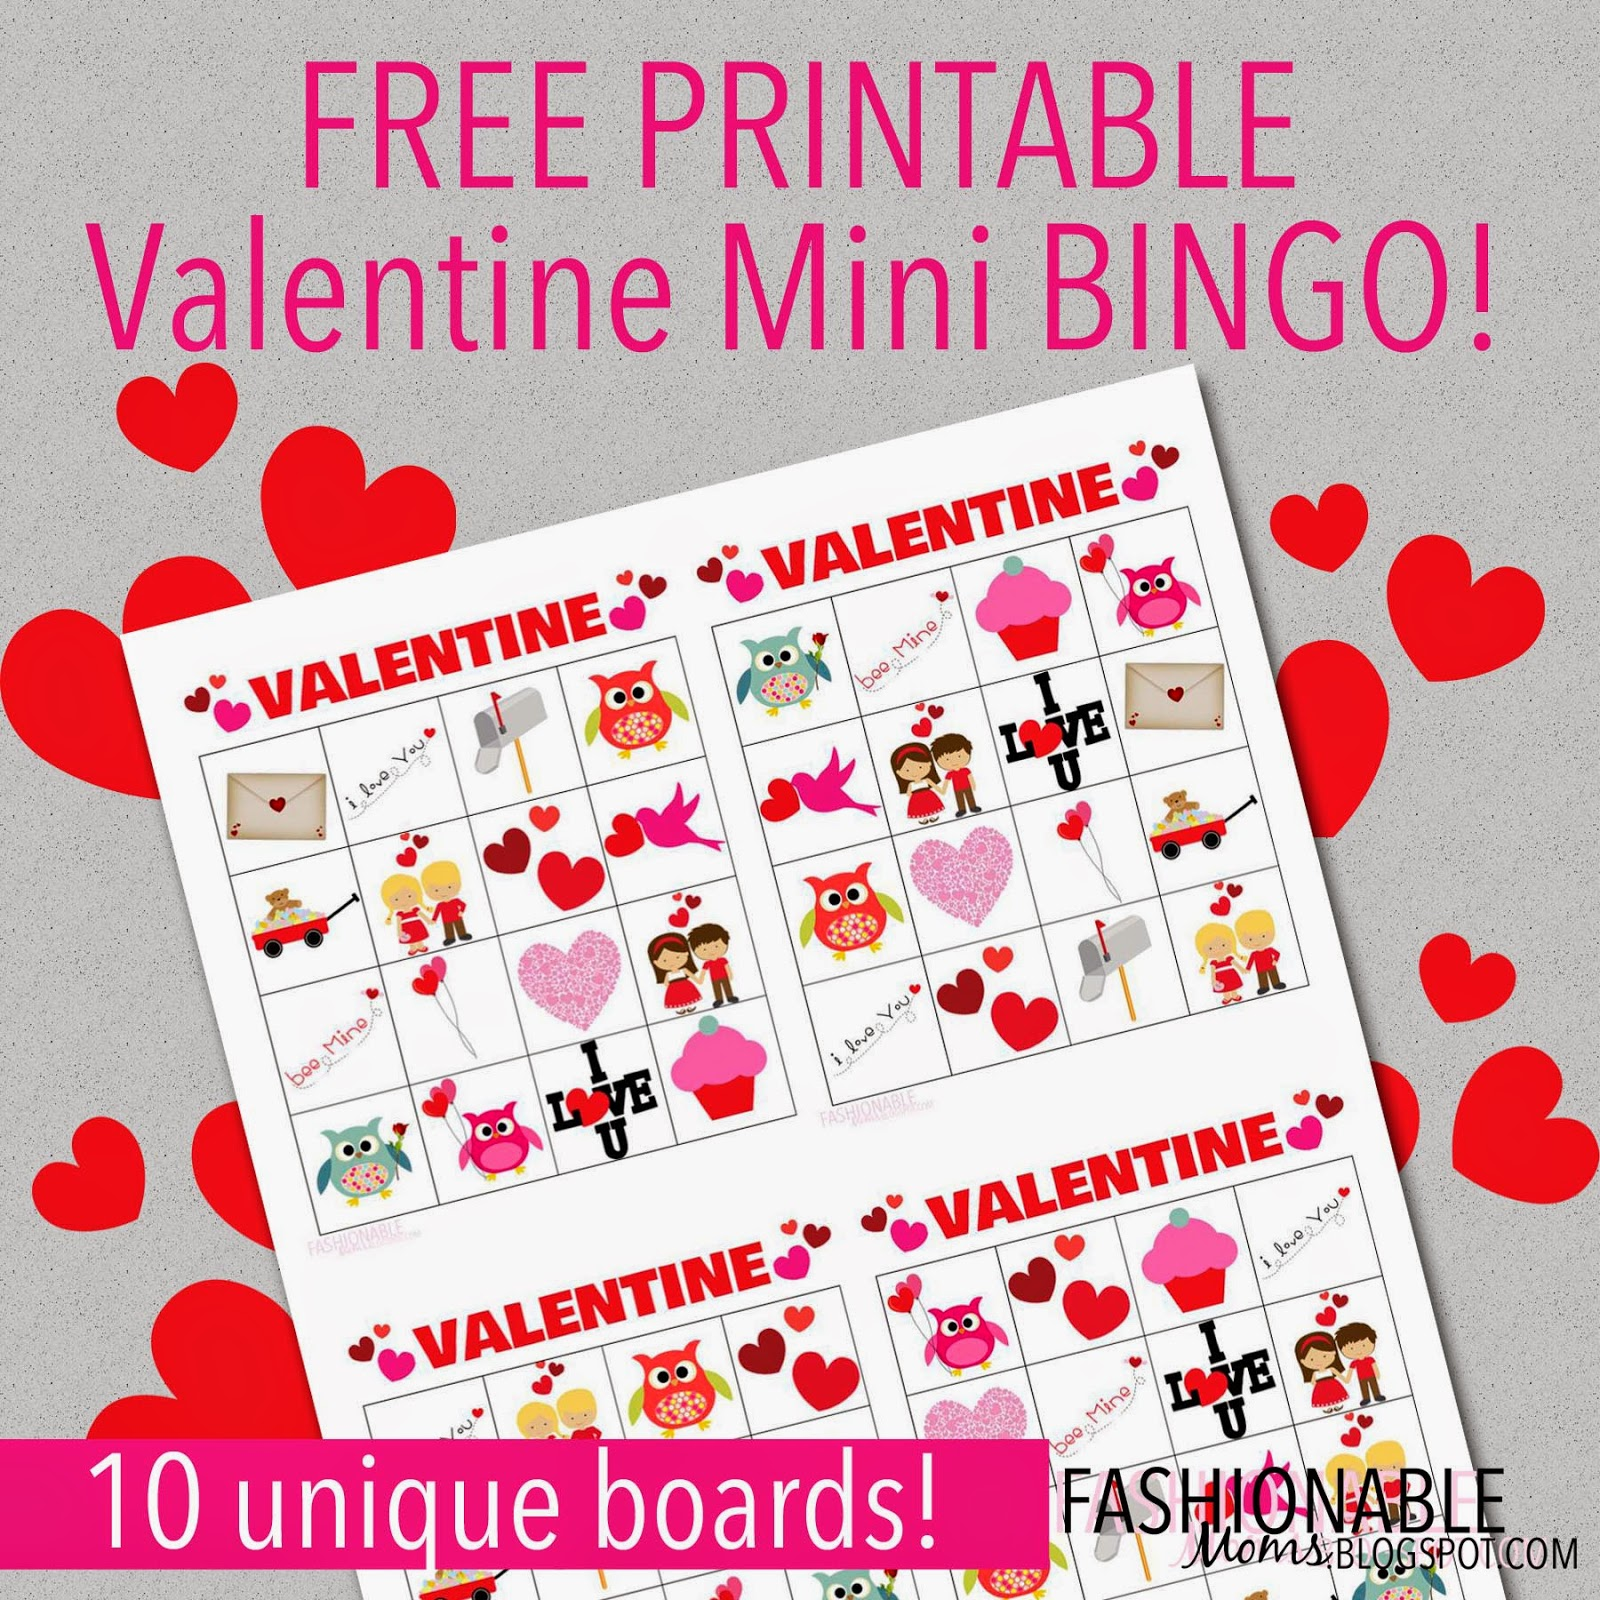 photo relating to Printable Valentine Bingo Cards titled My Present day Ideas: Totally free Printable: Valentine Mini Bingo!